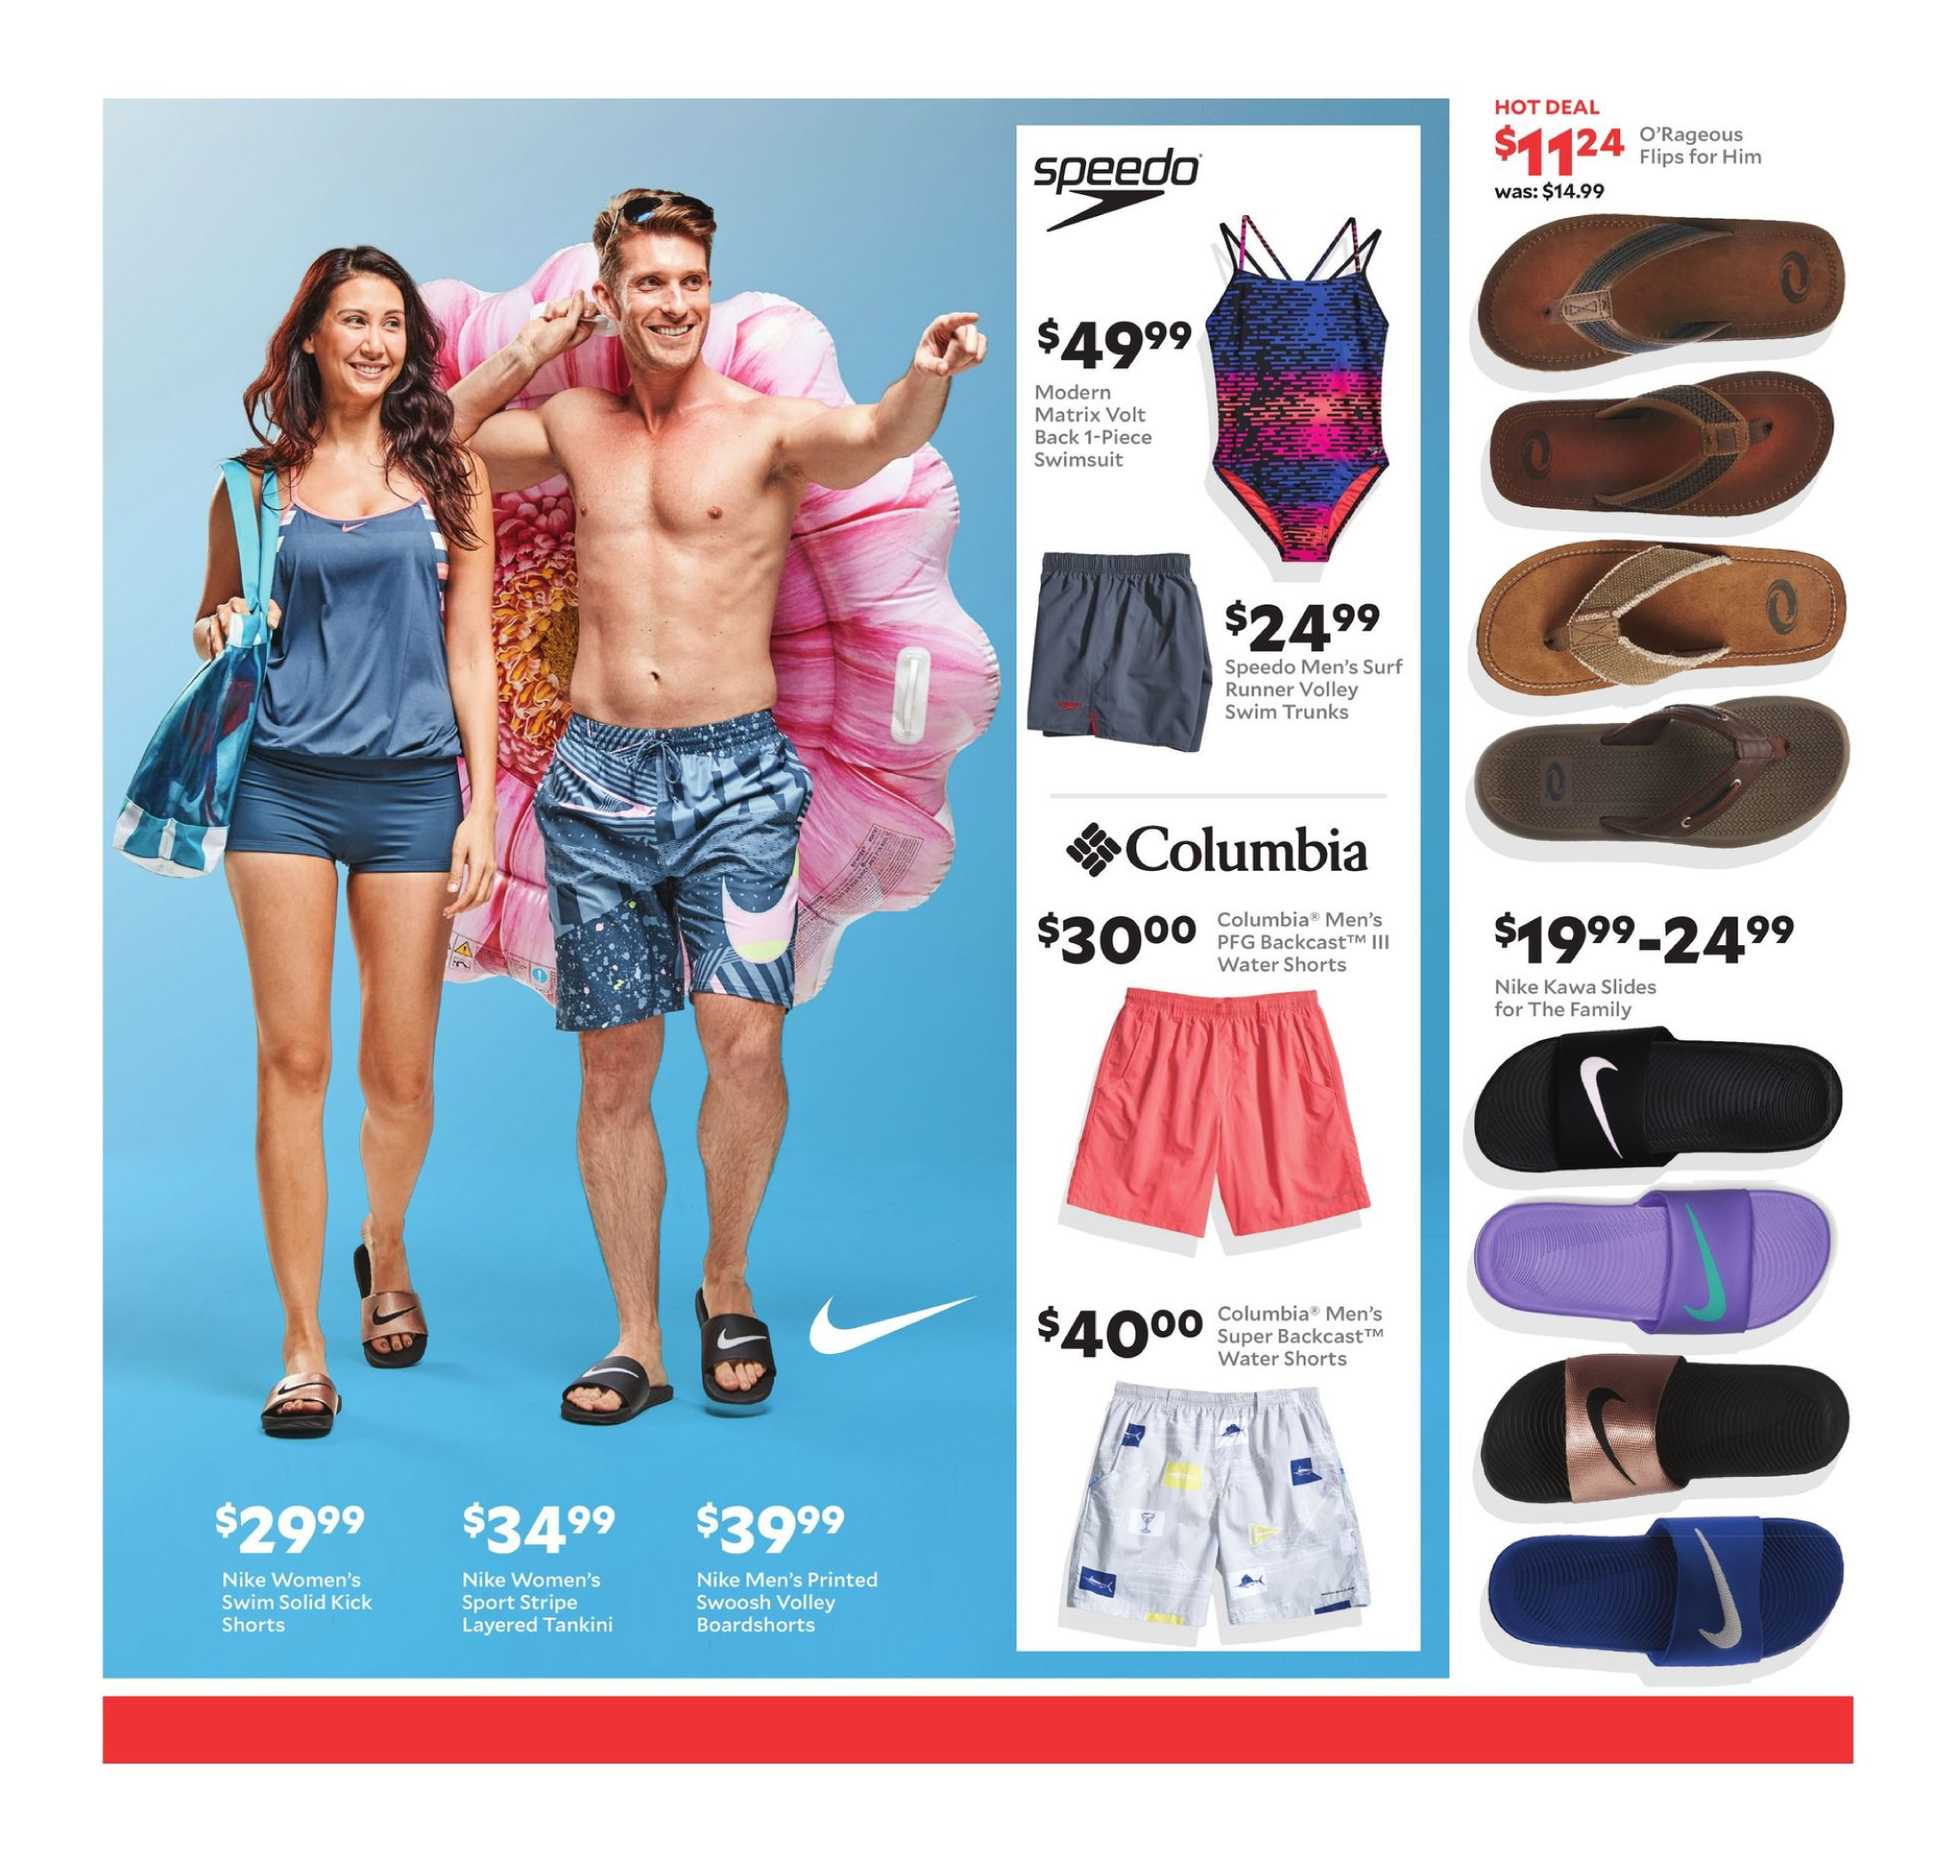 Academy Sports + Outdoors - promo starting from 05/26/19 to 06/01/19 - page 2.